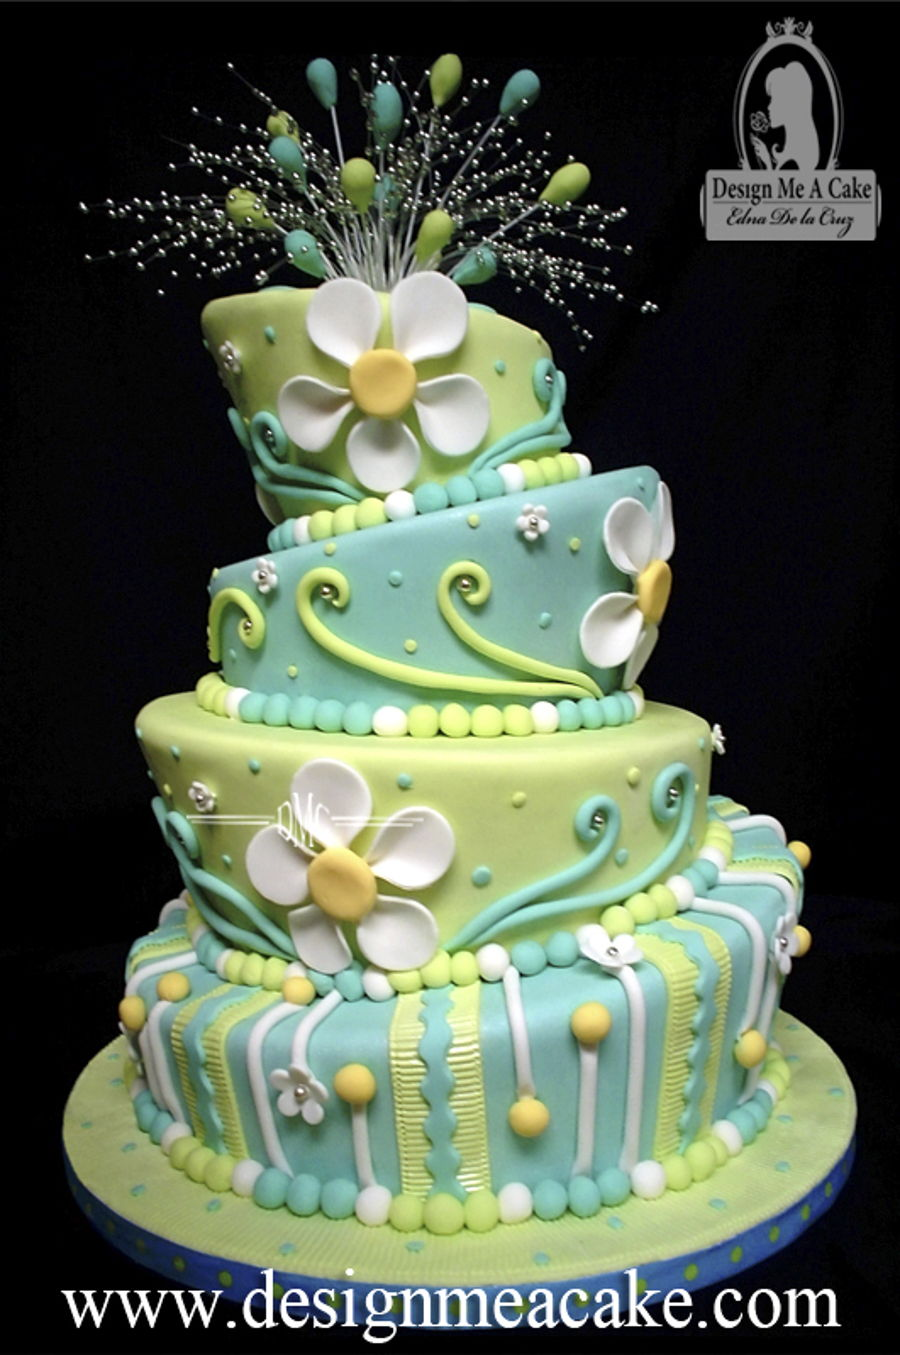 Topsy Daisy on Cake Central